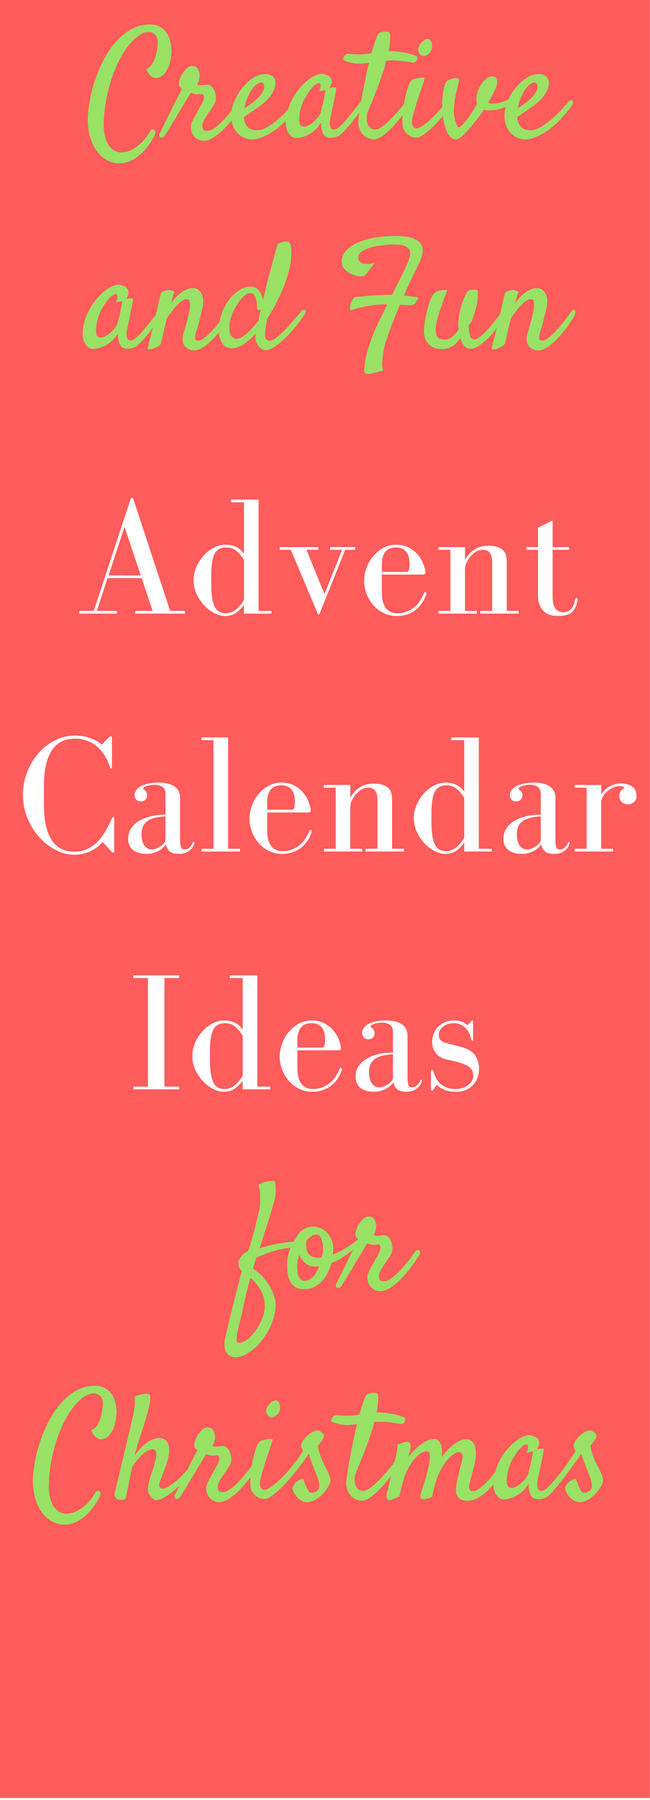 Advent calendar ideas for Christmas for kids, adults, and everyone in between!